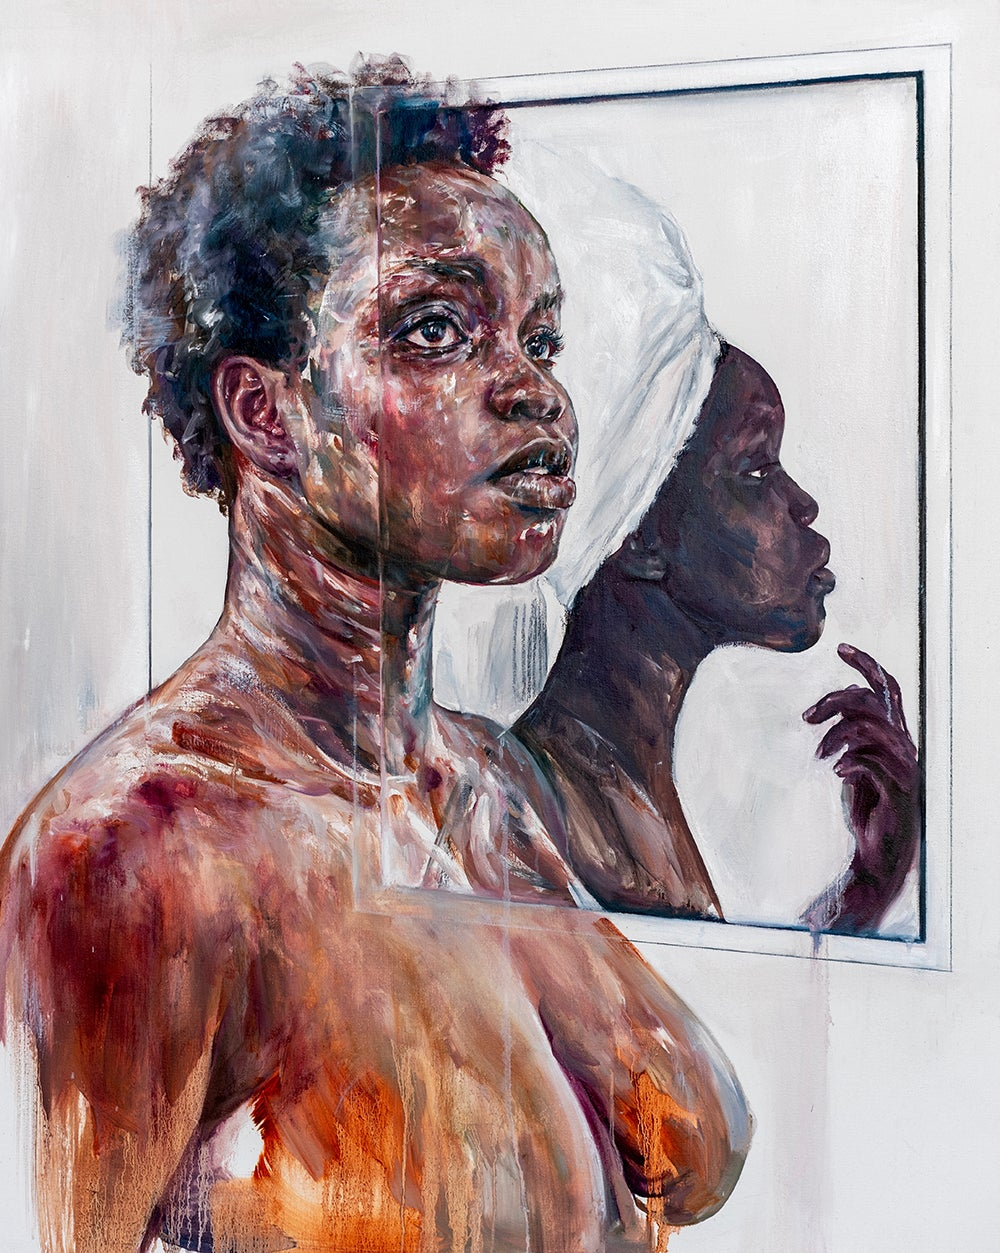 Image of Atong with her self portrait